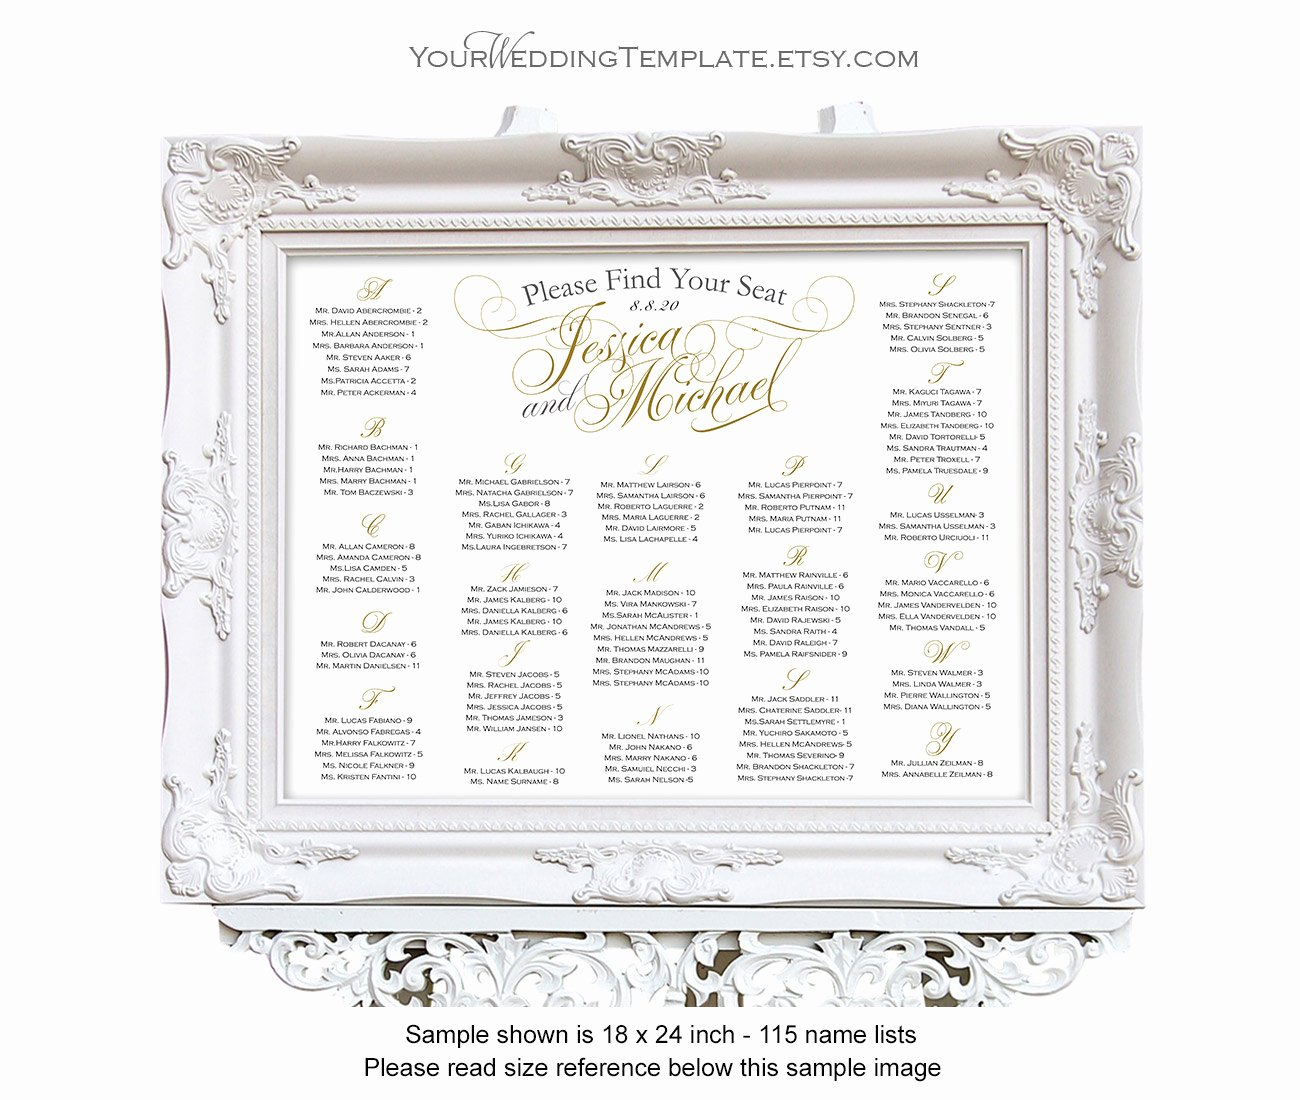 Wedding Seating Chart Alphabetical Elegant Wedding Seating Chart Alphabetical Printable Seating Chart